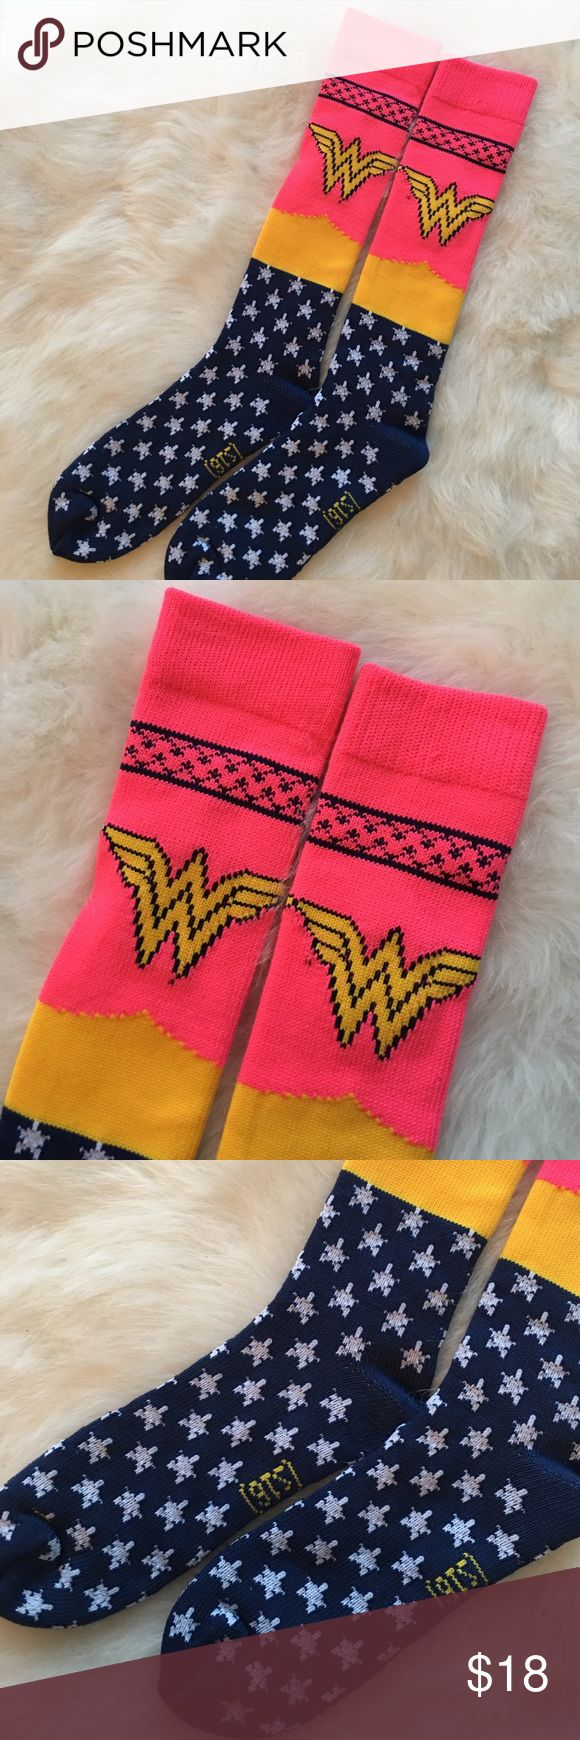 D.C. Comics Women's Knee High Wonder Woman Socks Knee high socks for all you ✨Wonder Women✨ out there. Pair them with your favorite shorts for Festival Season, or a pair of workout spandex/shorts during your next SoulCycle or Spin Class. So so cute. Bright and bold colors. Never worn. Taken out of package, never even tried on. Stored and shipped from smoke and pet free home  DC Comics Accessories Hosiery & Socks